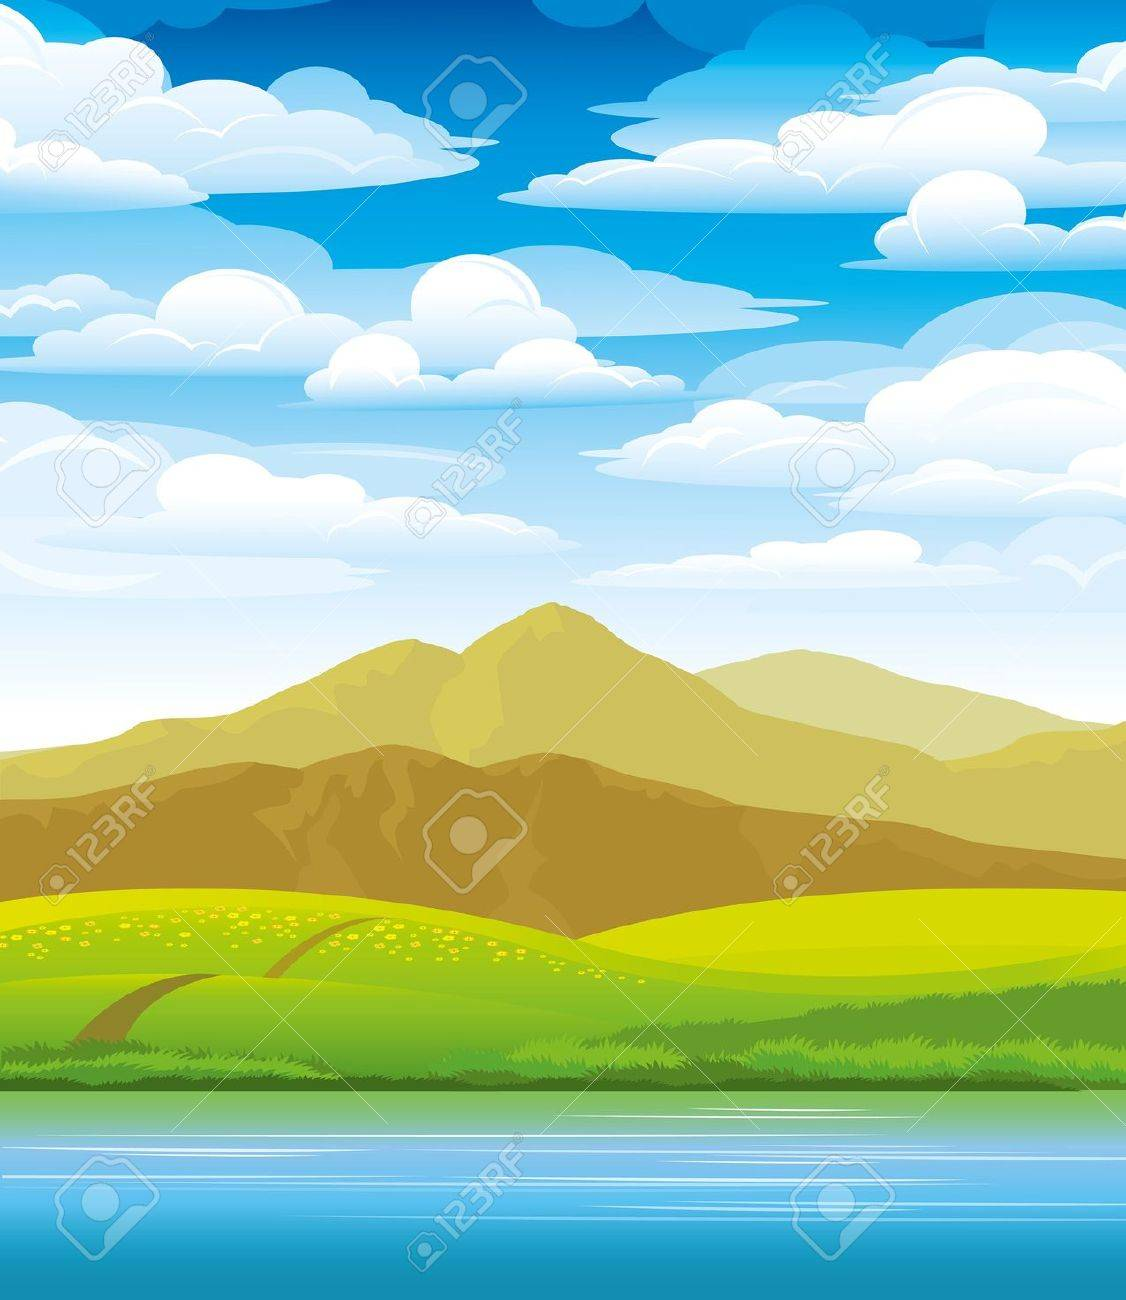 Green landscape with meadow, mountains and river on a cloudy sky background Stock Vector - 10800817